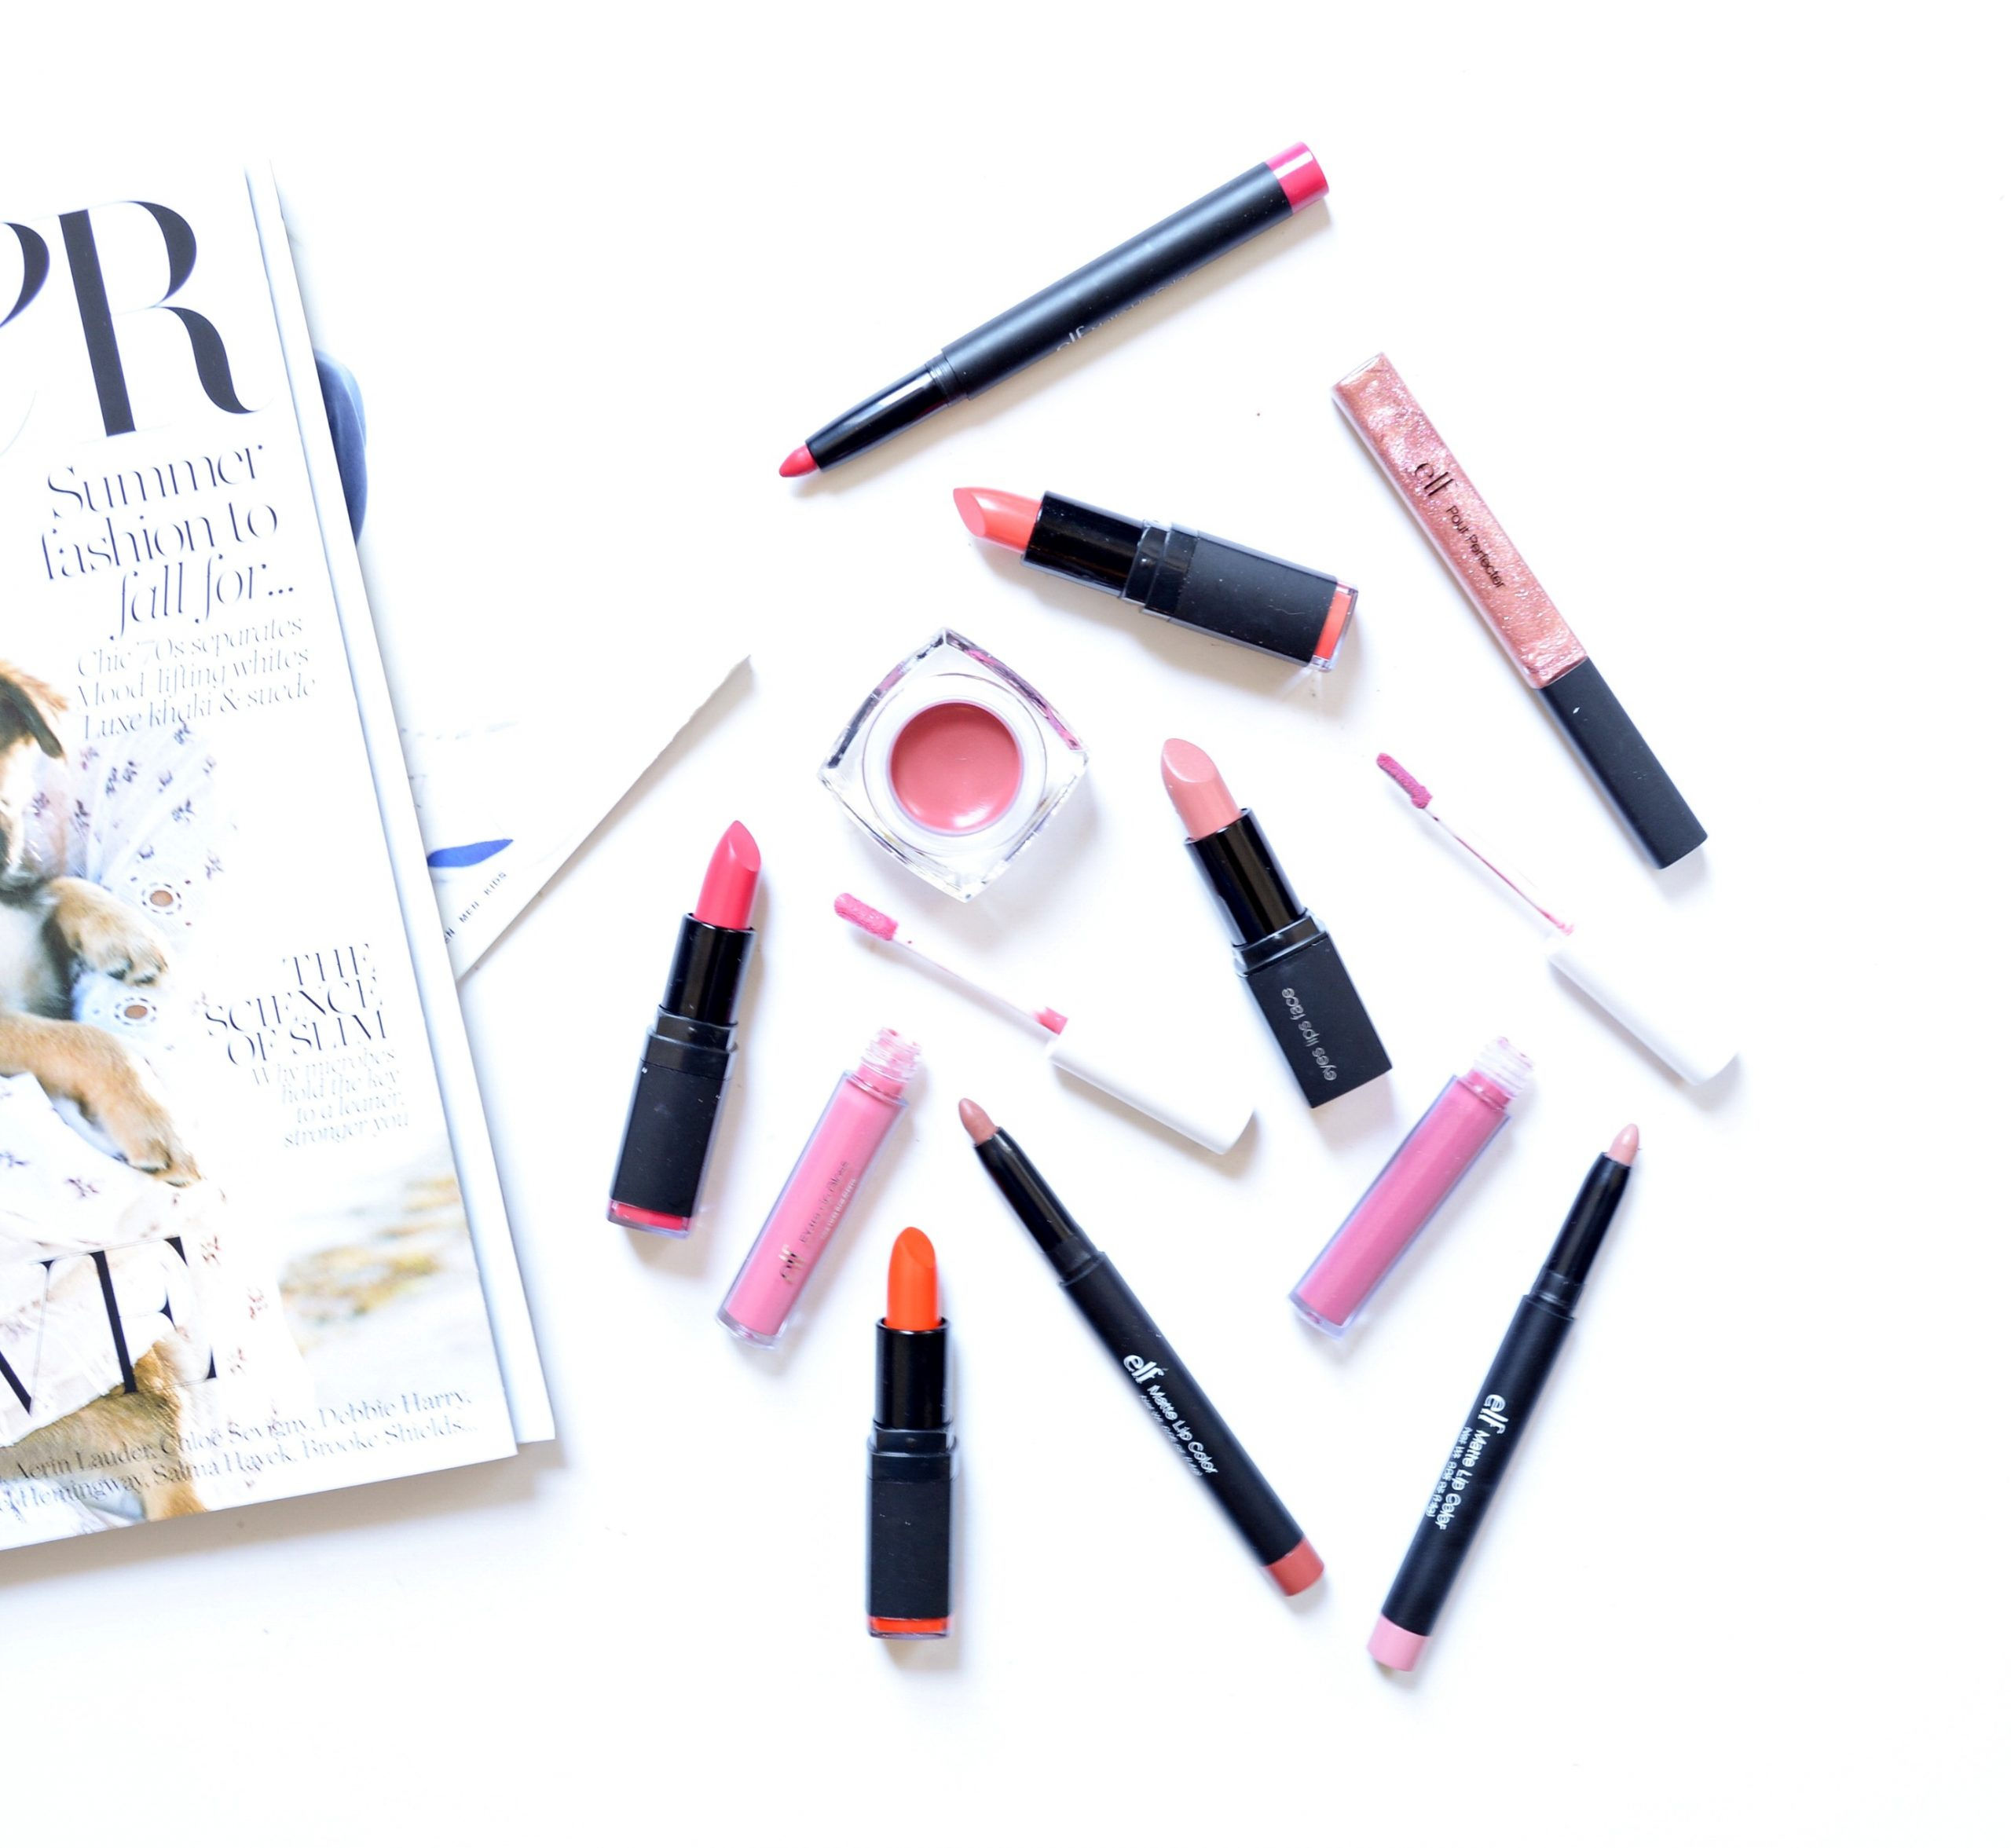 http://sarahlovesmakeup.com/wp-content/uploads/2015/05/elf-lip-products-first-900x827.jpg